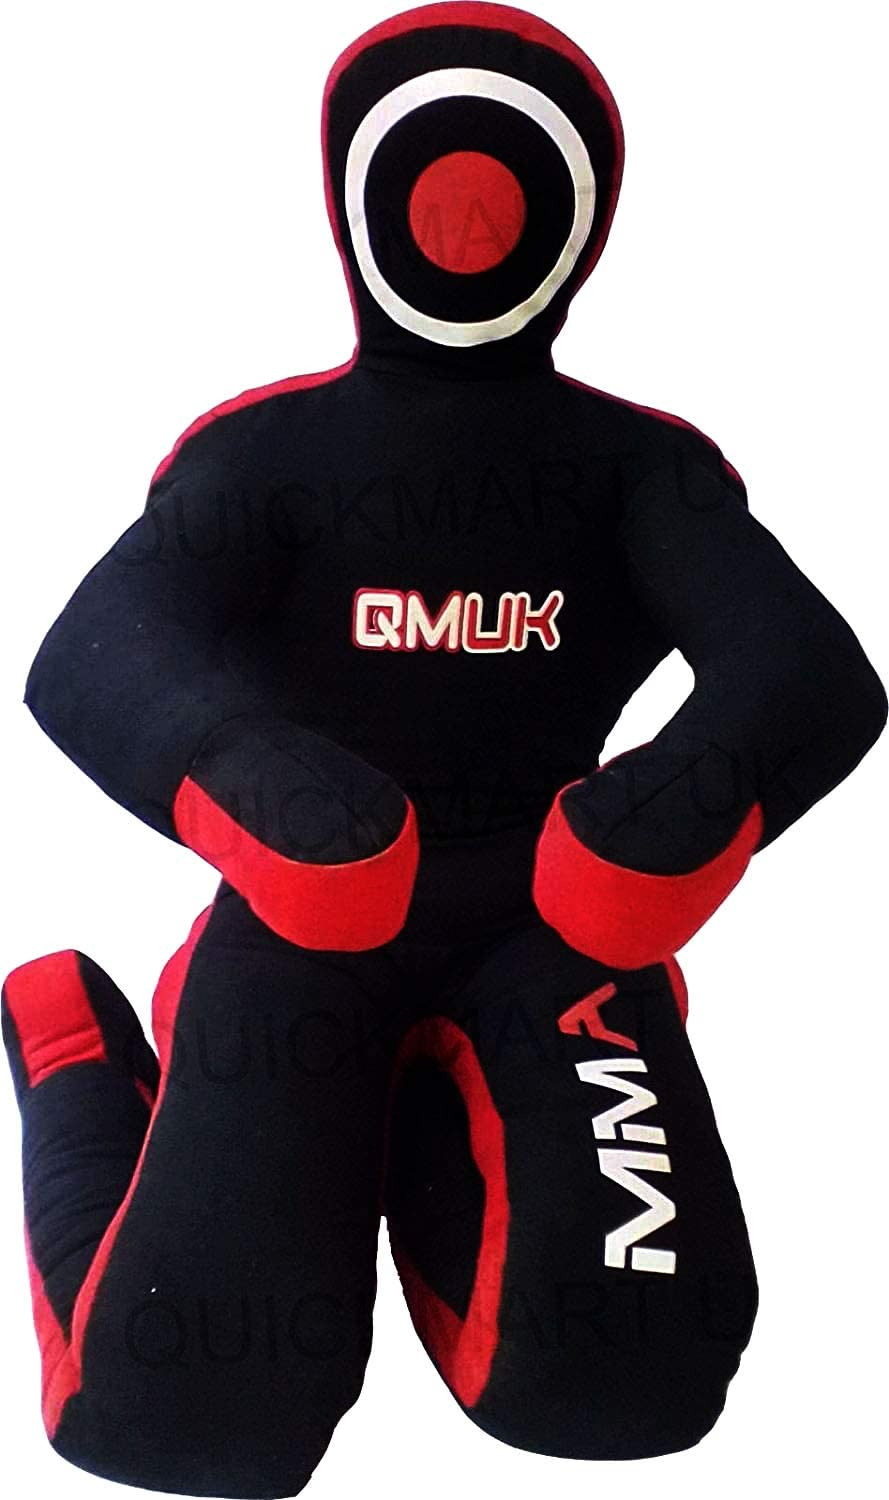 QMUK MMA Grappling Brazilian Jiu A Martial Mixed Challenge the lowest price of Japan In stock Wrestling Jitsu